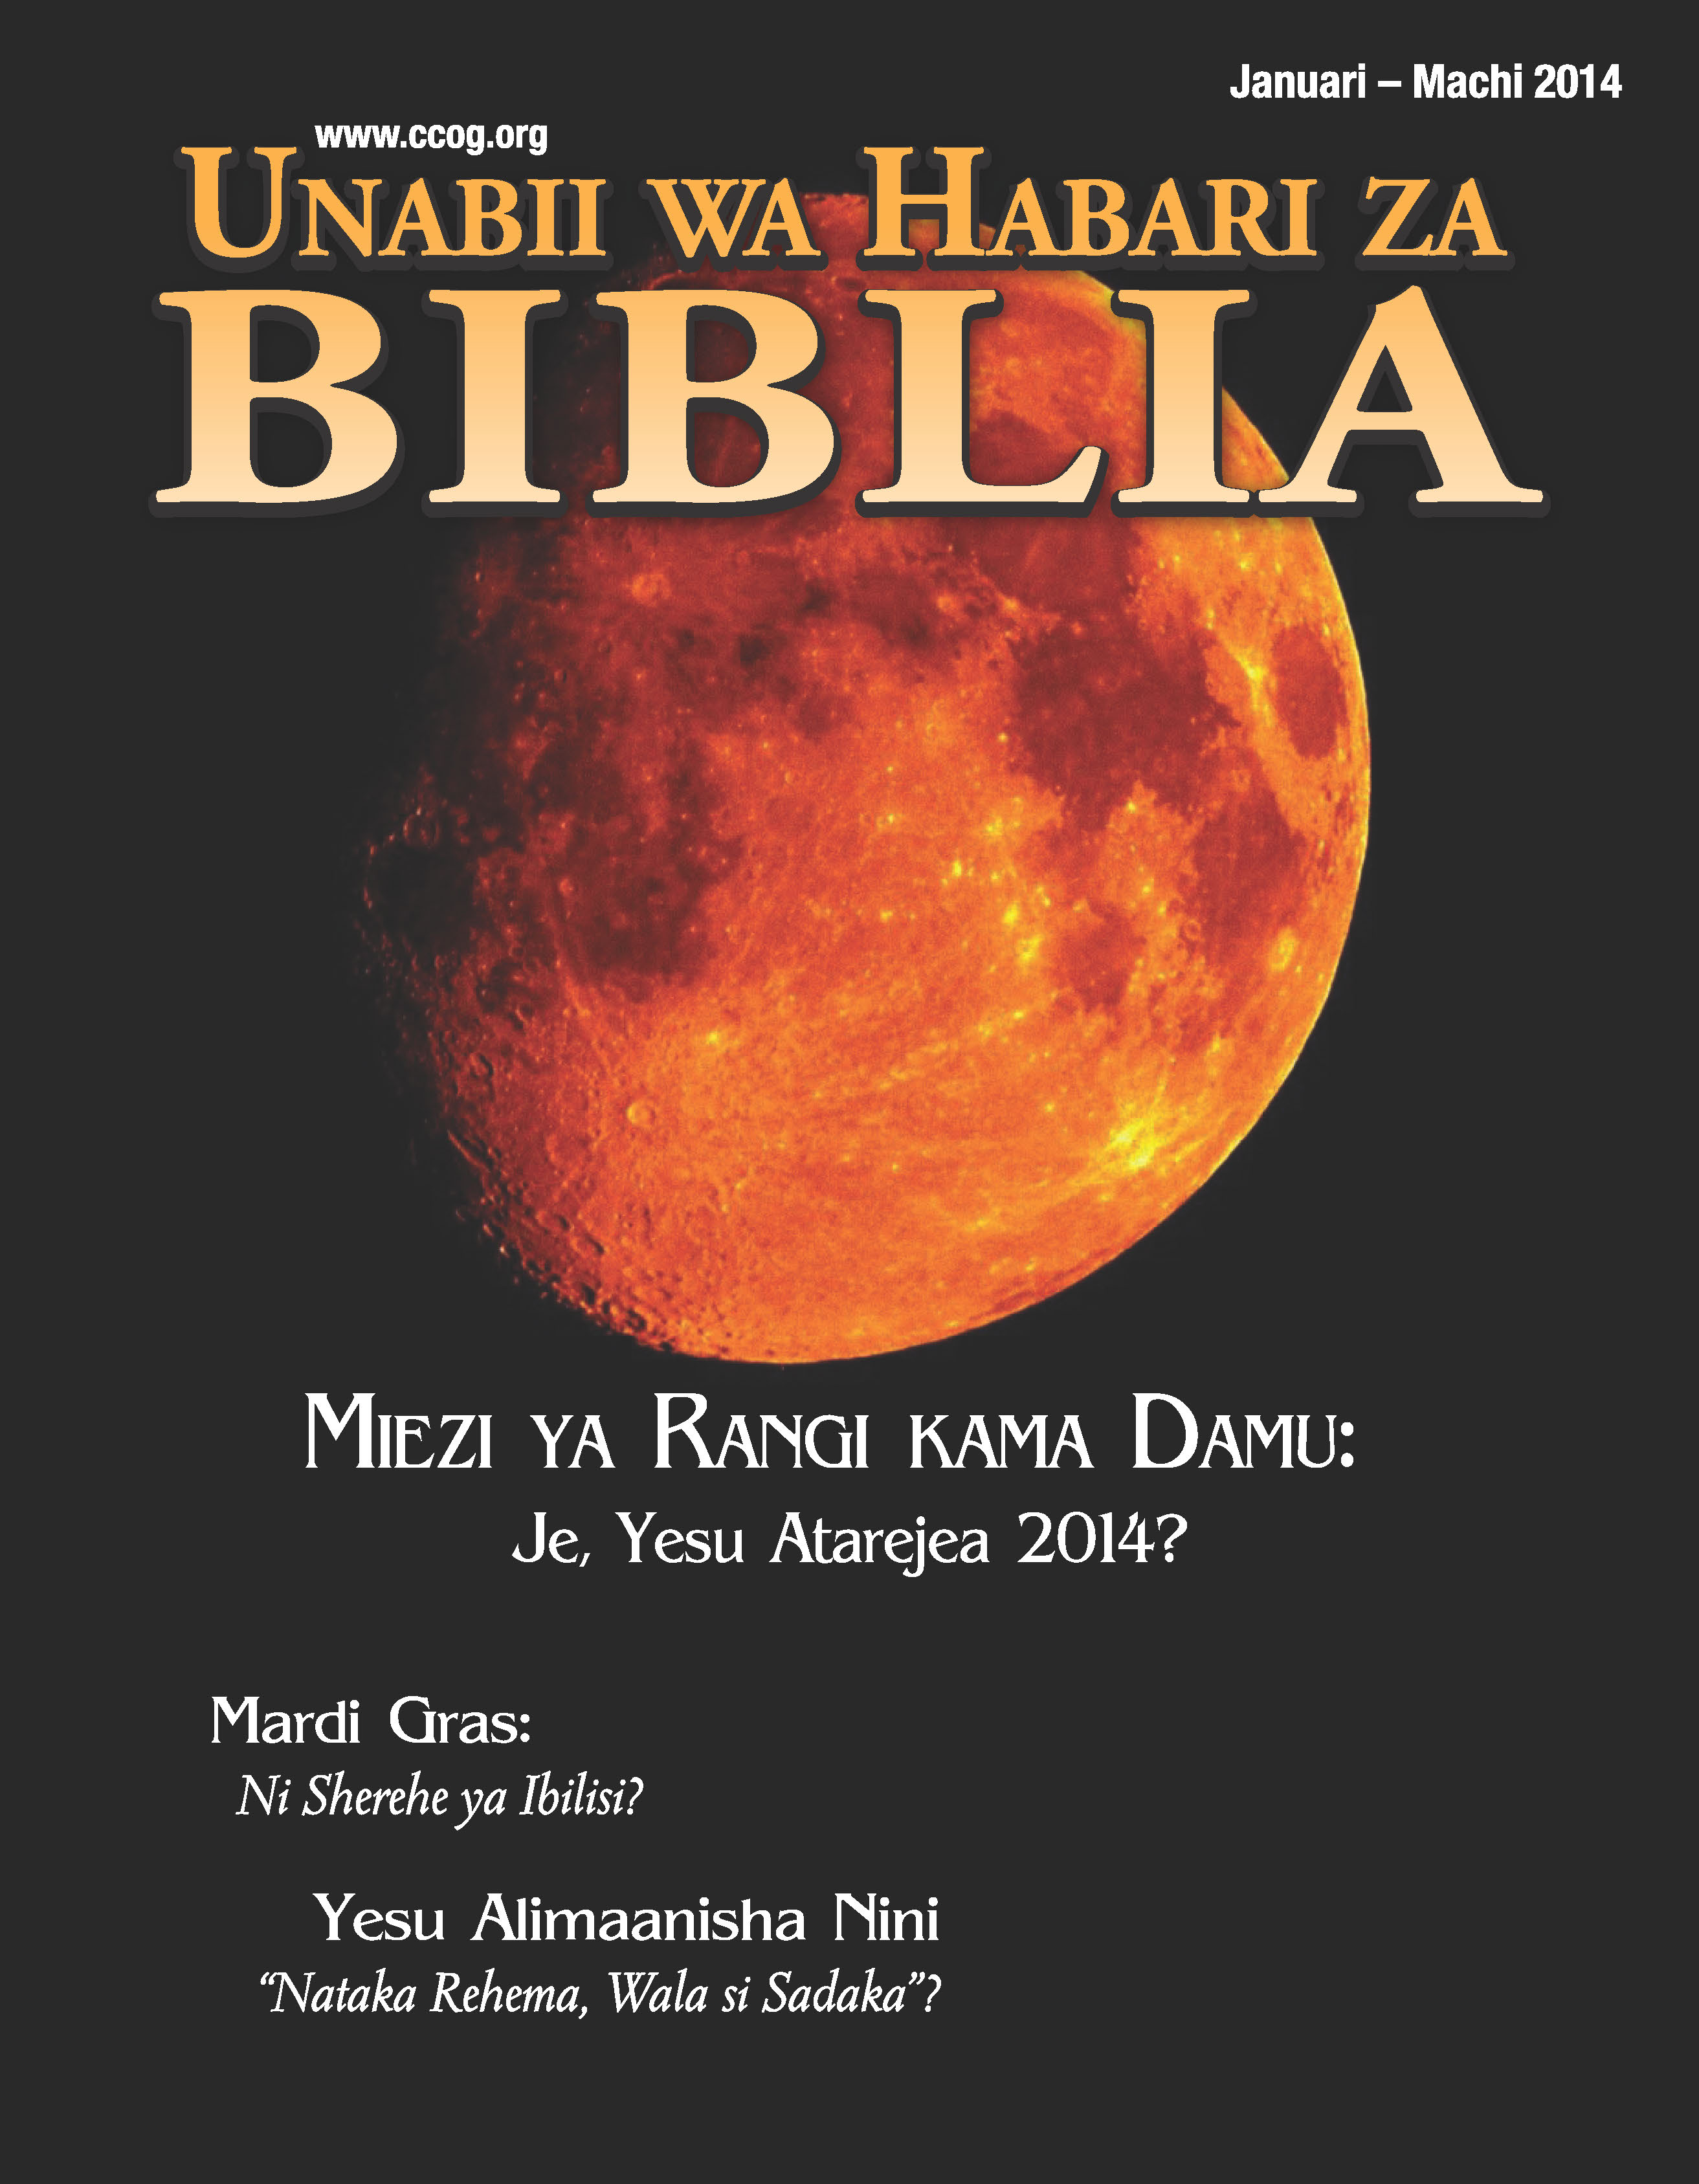 Blood Moon Bible Prophecy